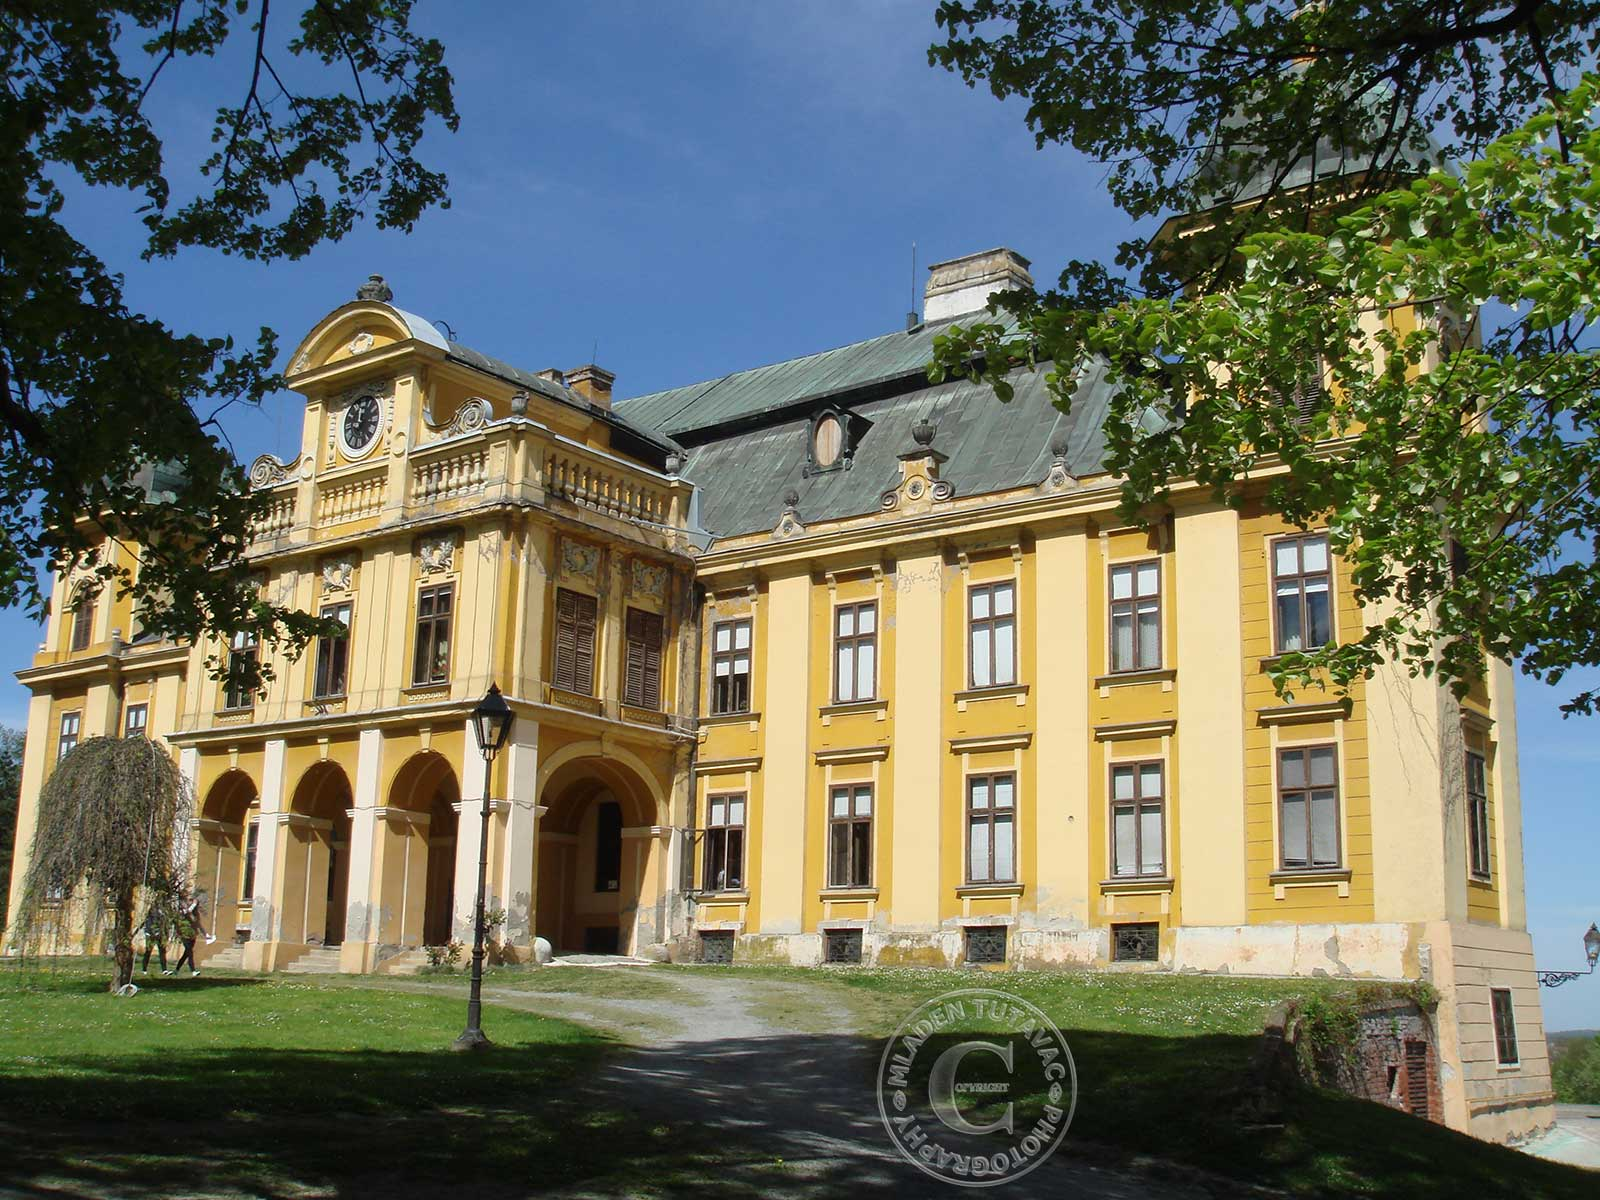 tour guide:The Great castle of the Pejacevic family in Nasice